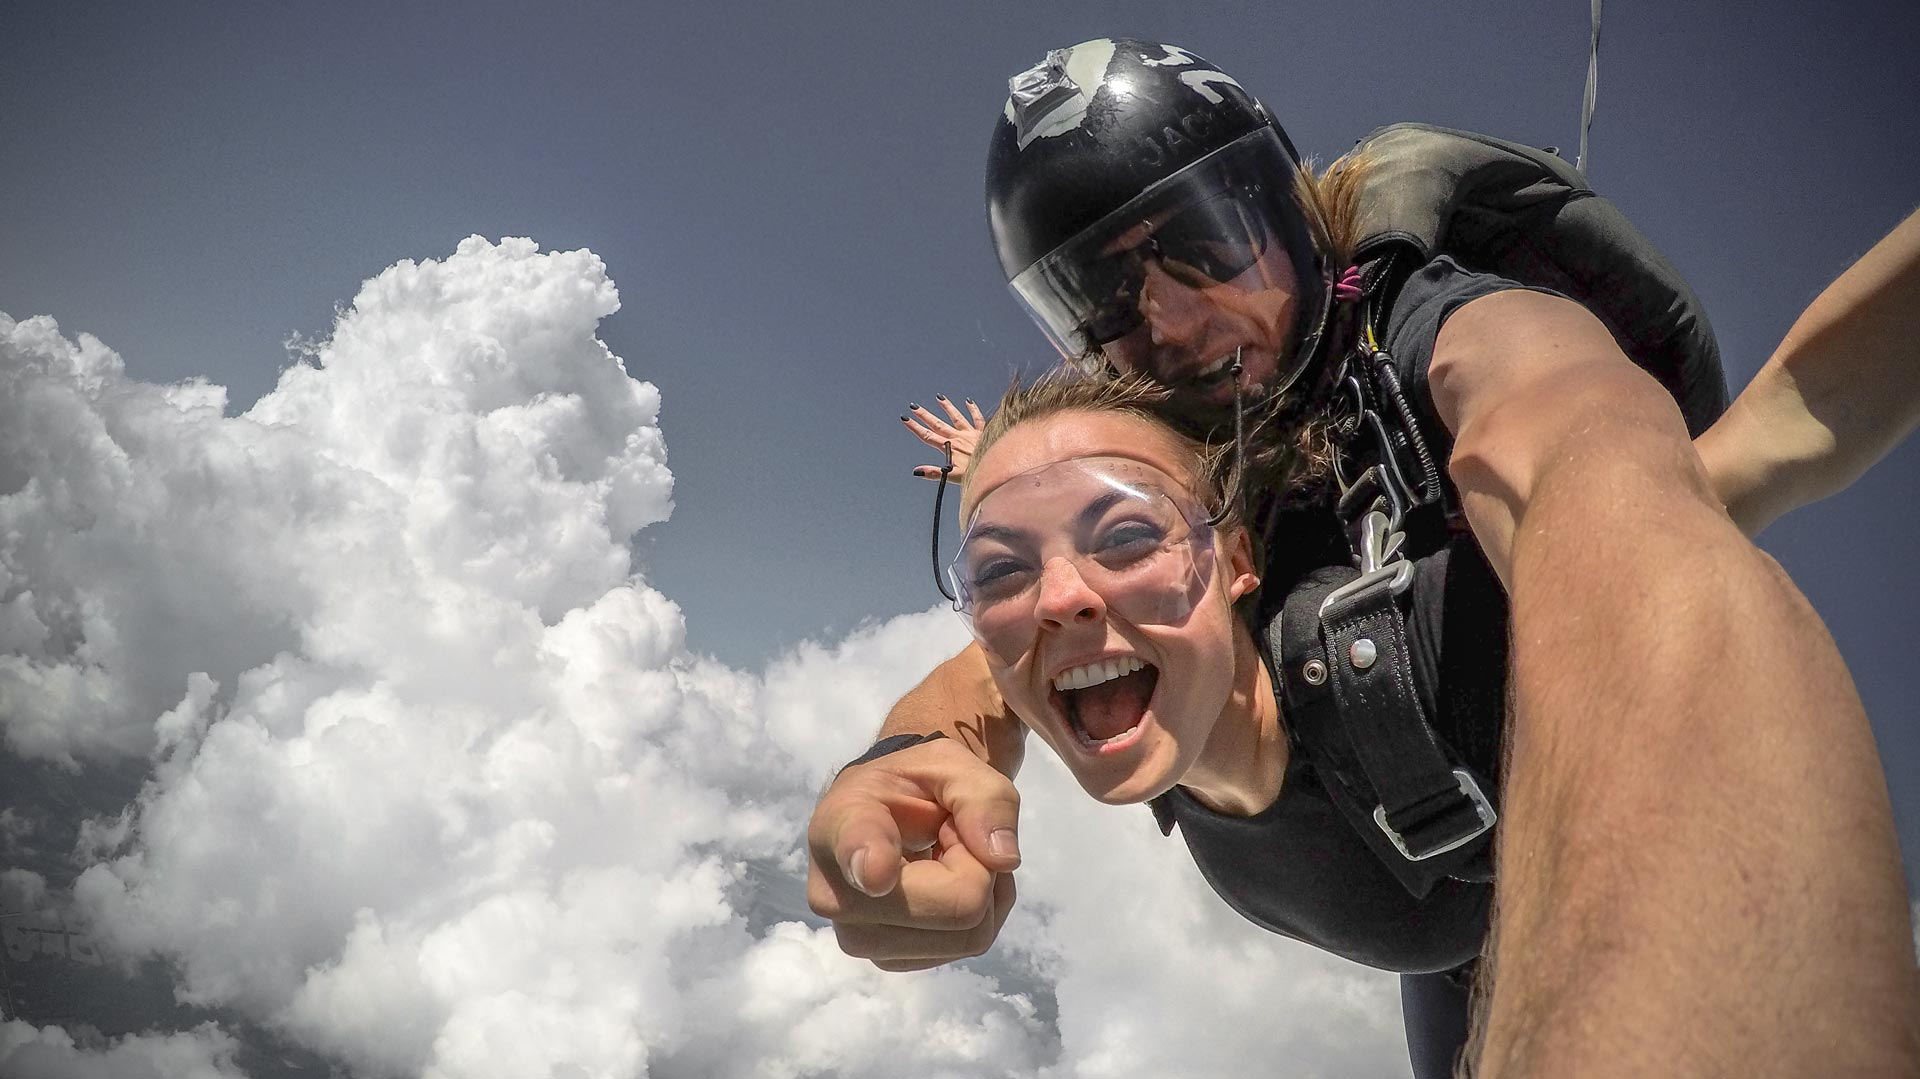 Skydive Jobs in Toronto - Skydive Ontario